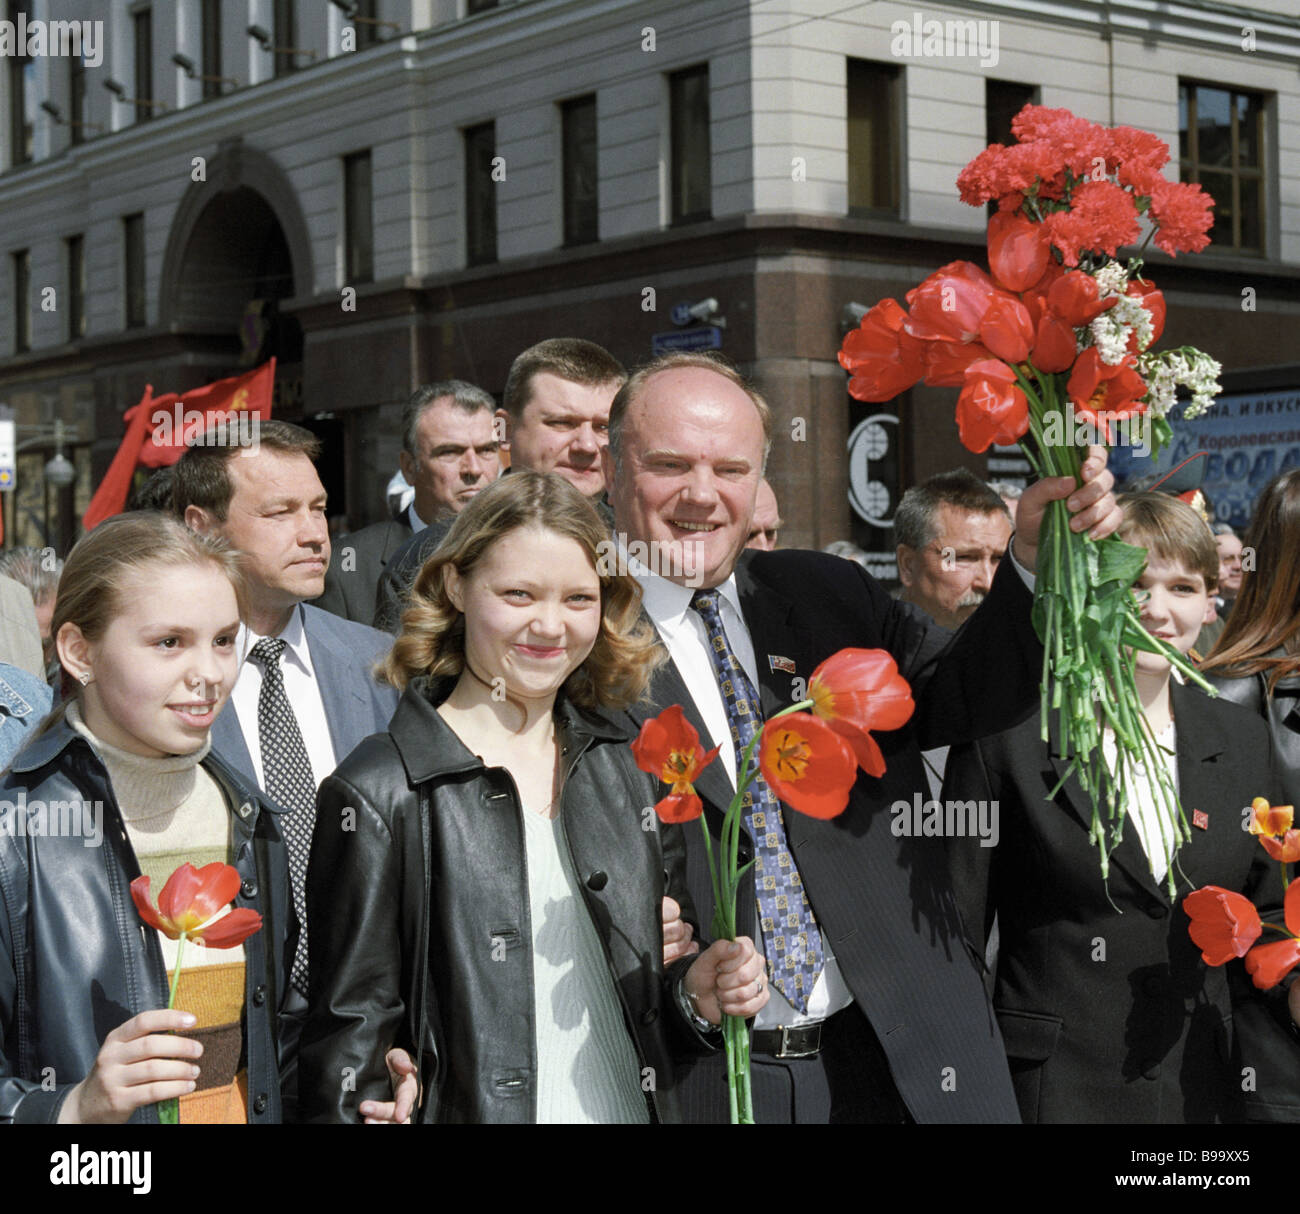 The Russian Communists leader Gennady Zyuganov marching together with other demonstrators on the 56th V Day - Stock Image